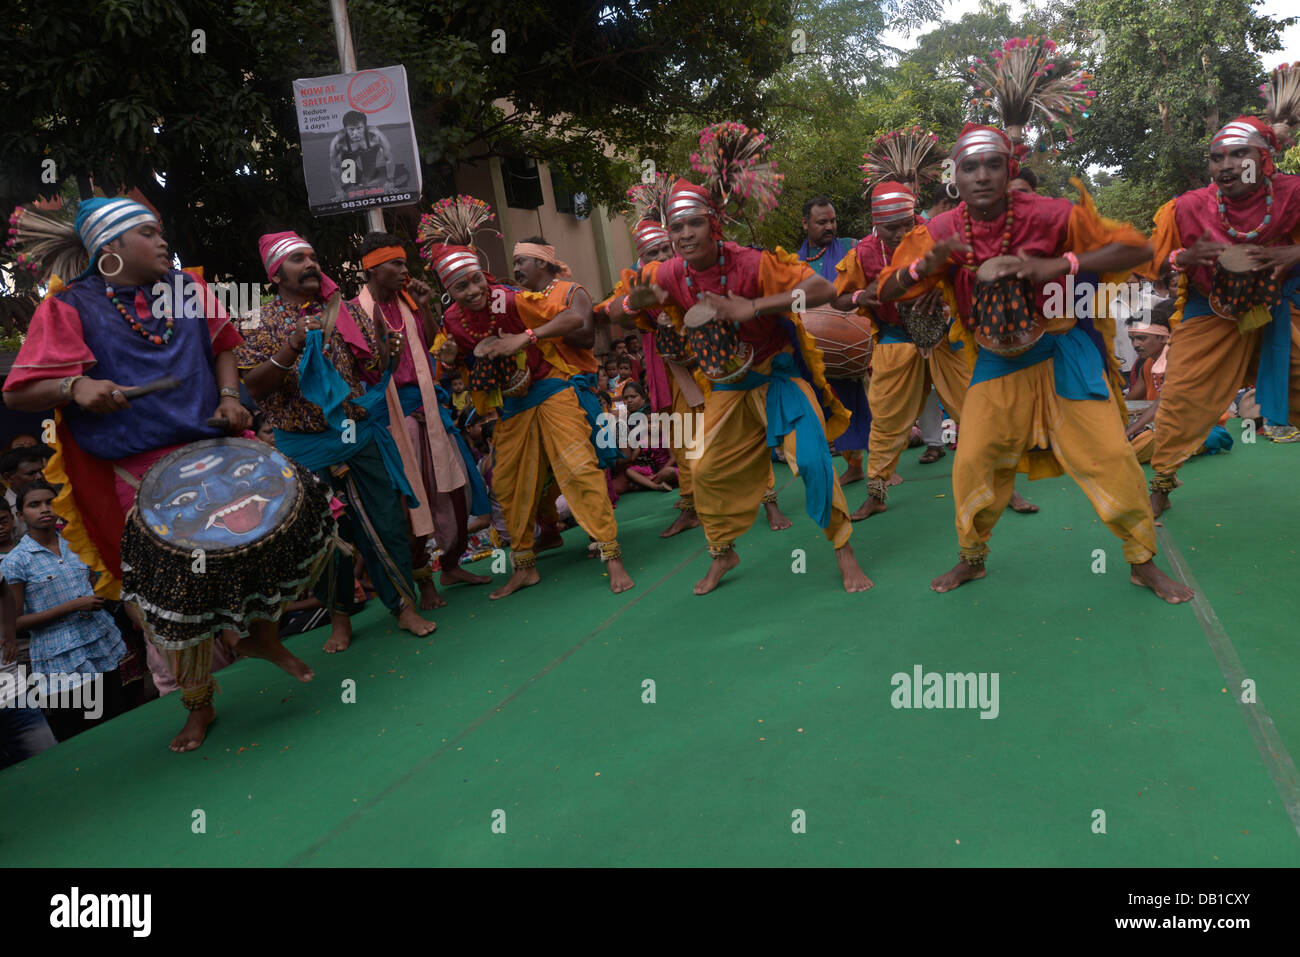 India salt drums, fast rhythm & foot steps-by strong stout males - Stock Image